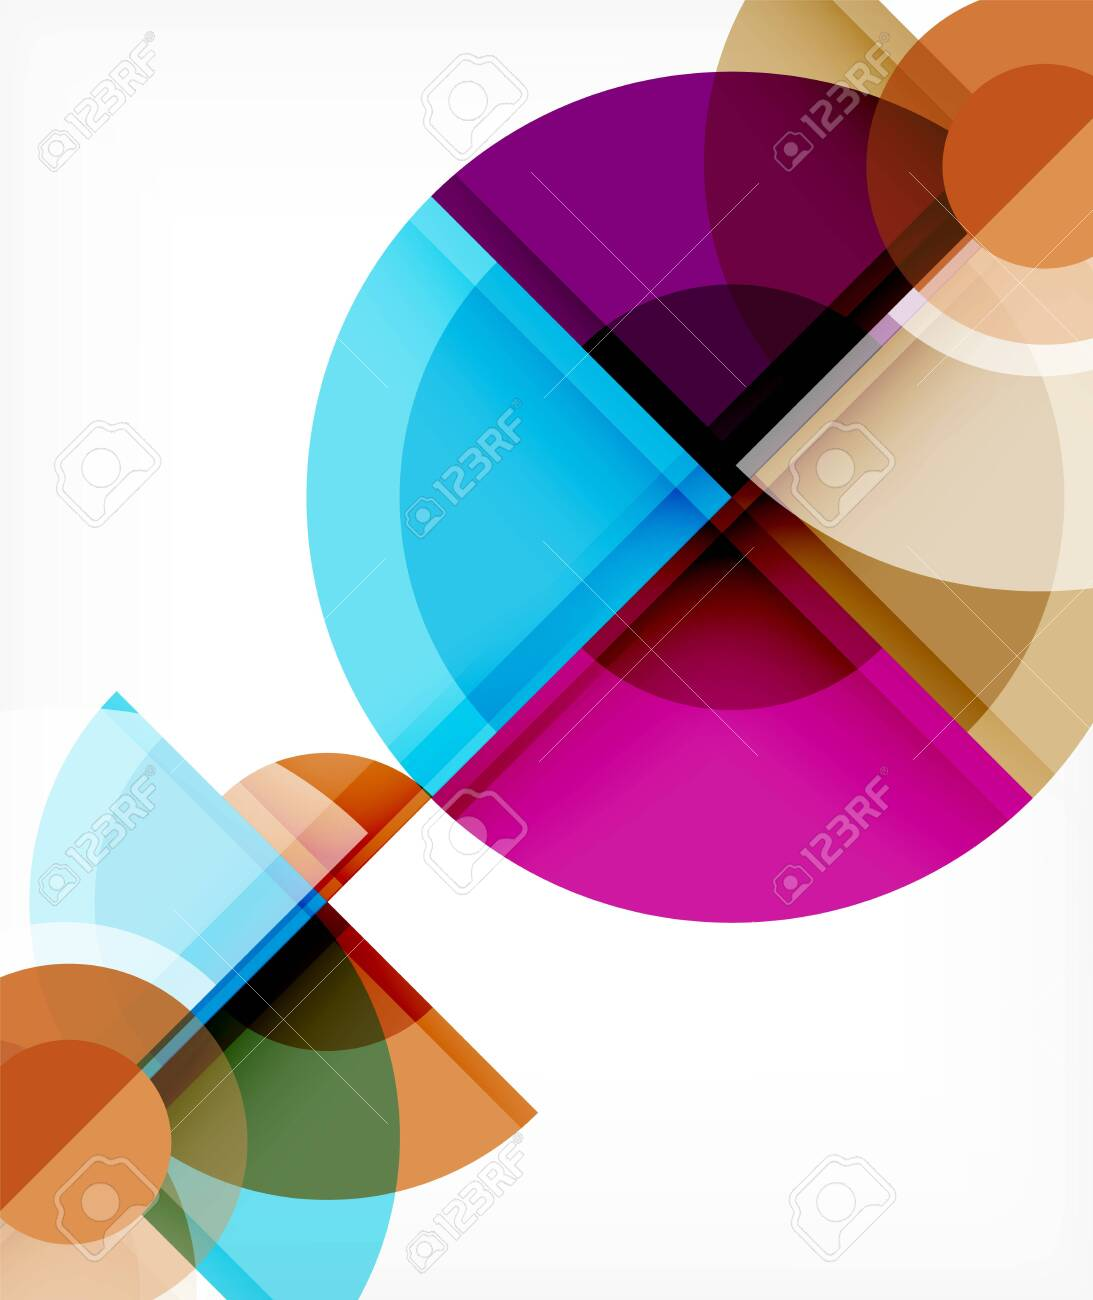 Abstract background, circle and triangle design round shapes overlapping each other. Geometric trendy template. Vector Illustration For Wallpaper, Banner, Background, Card, Book Illustration, landing page - 143490573